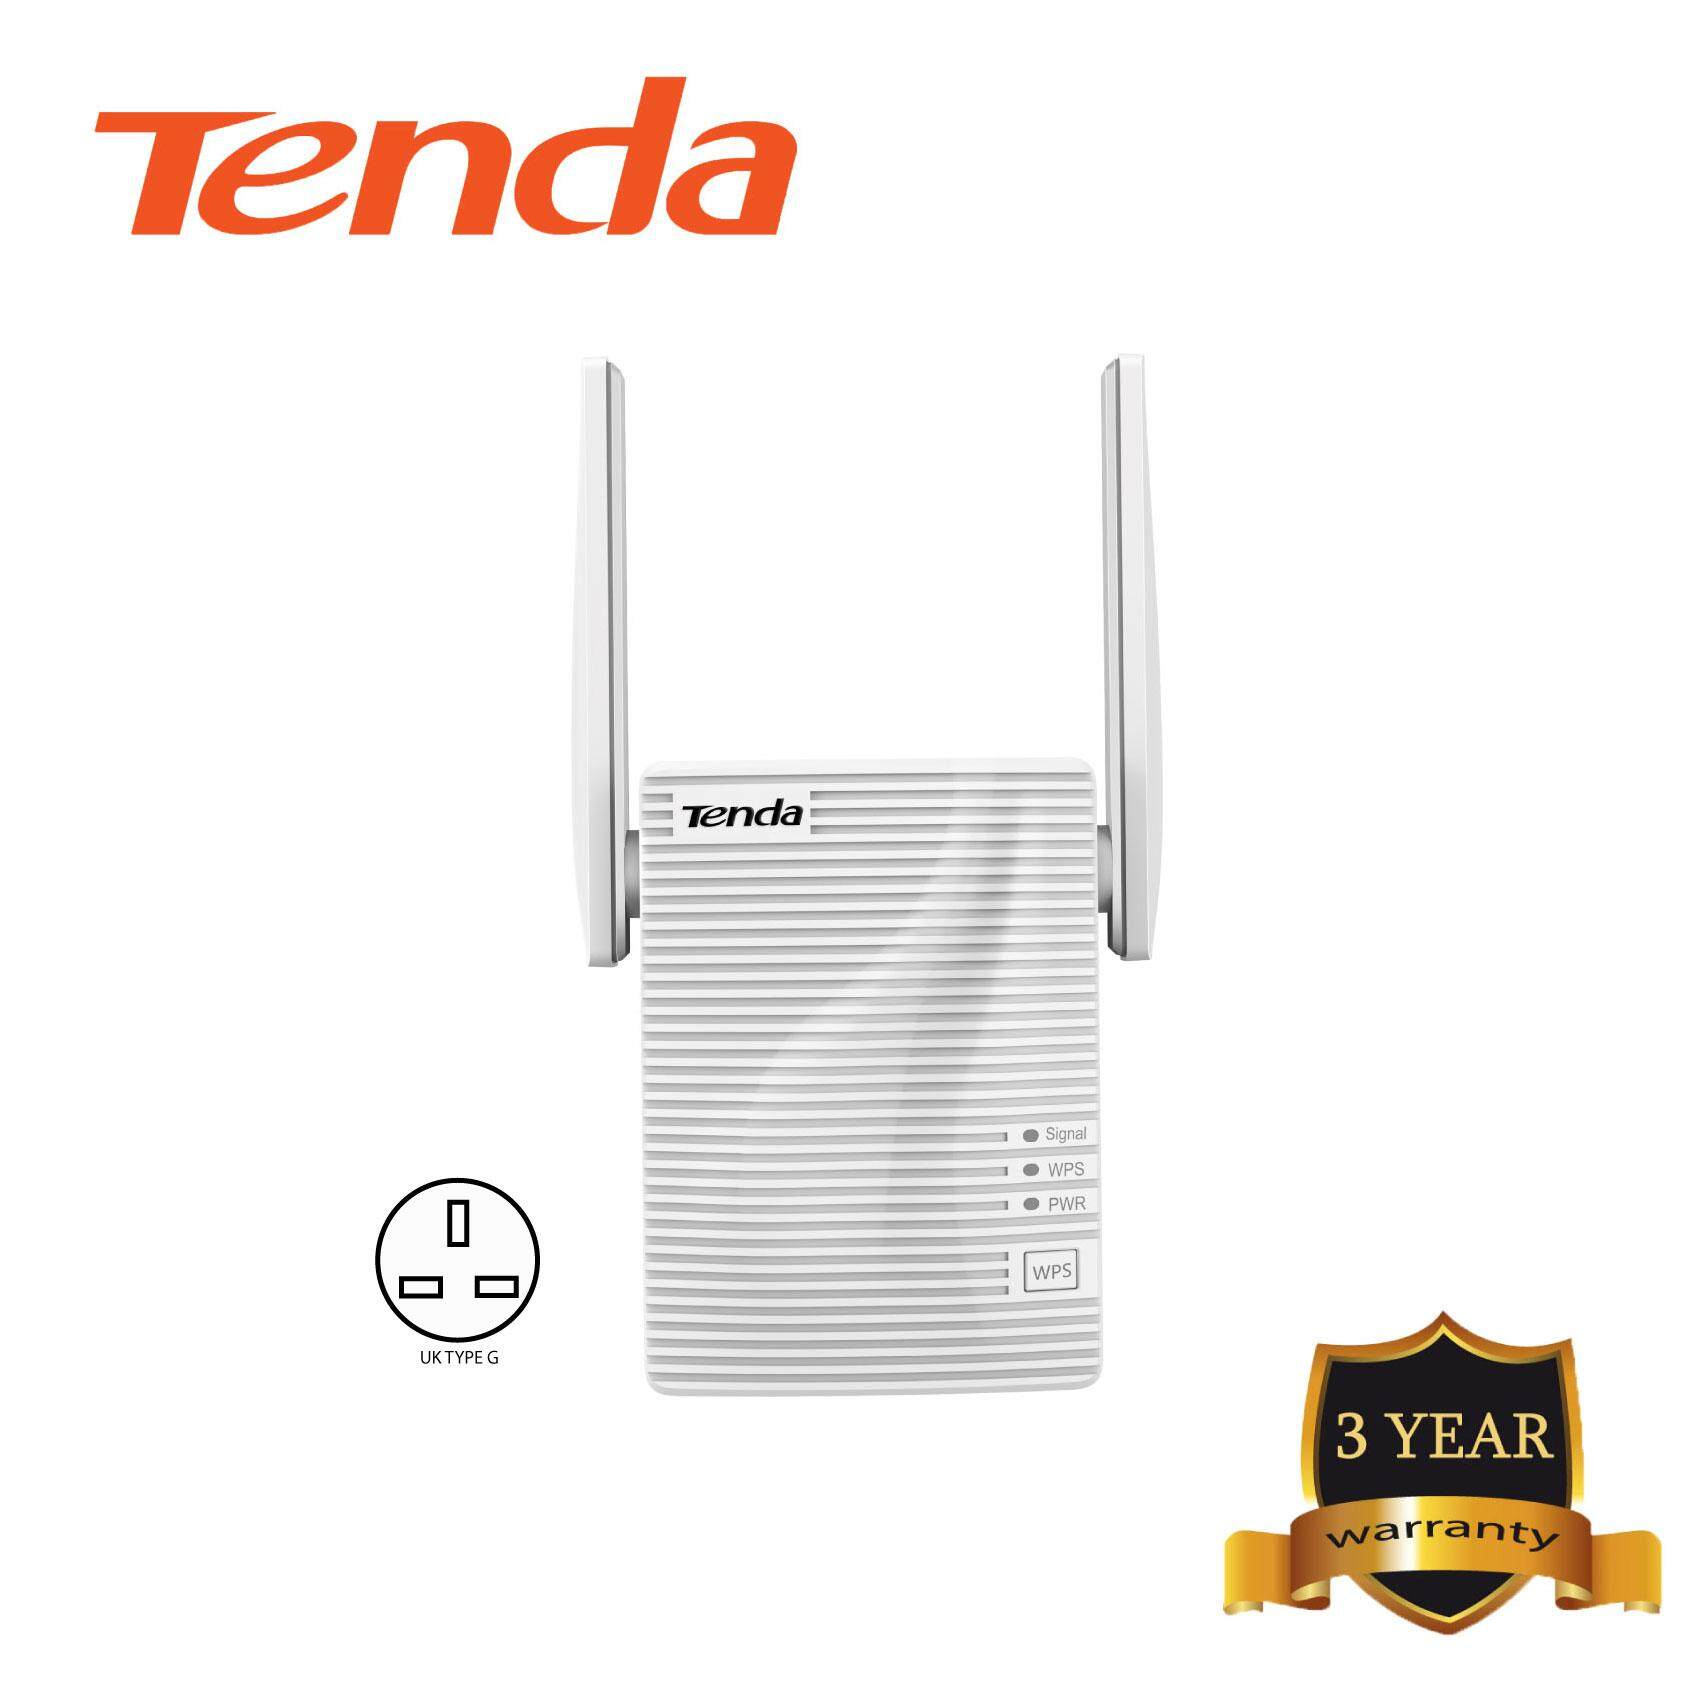 Features Original Tenda Ac6 1200mbps Wireless Router 5dbi External A18 Range Extender